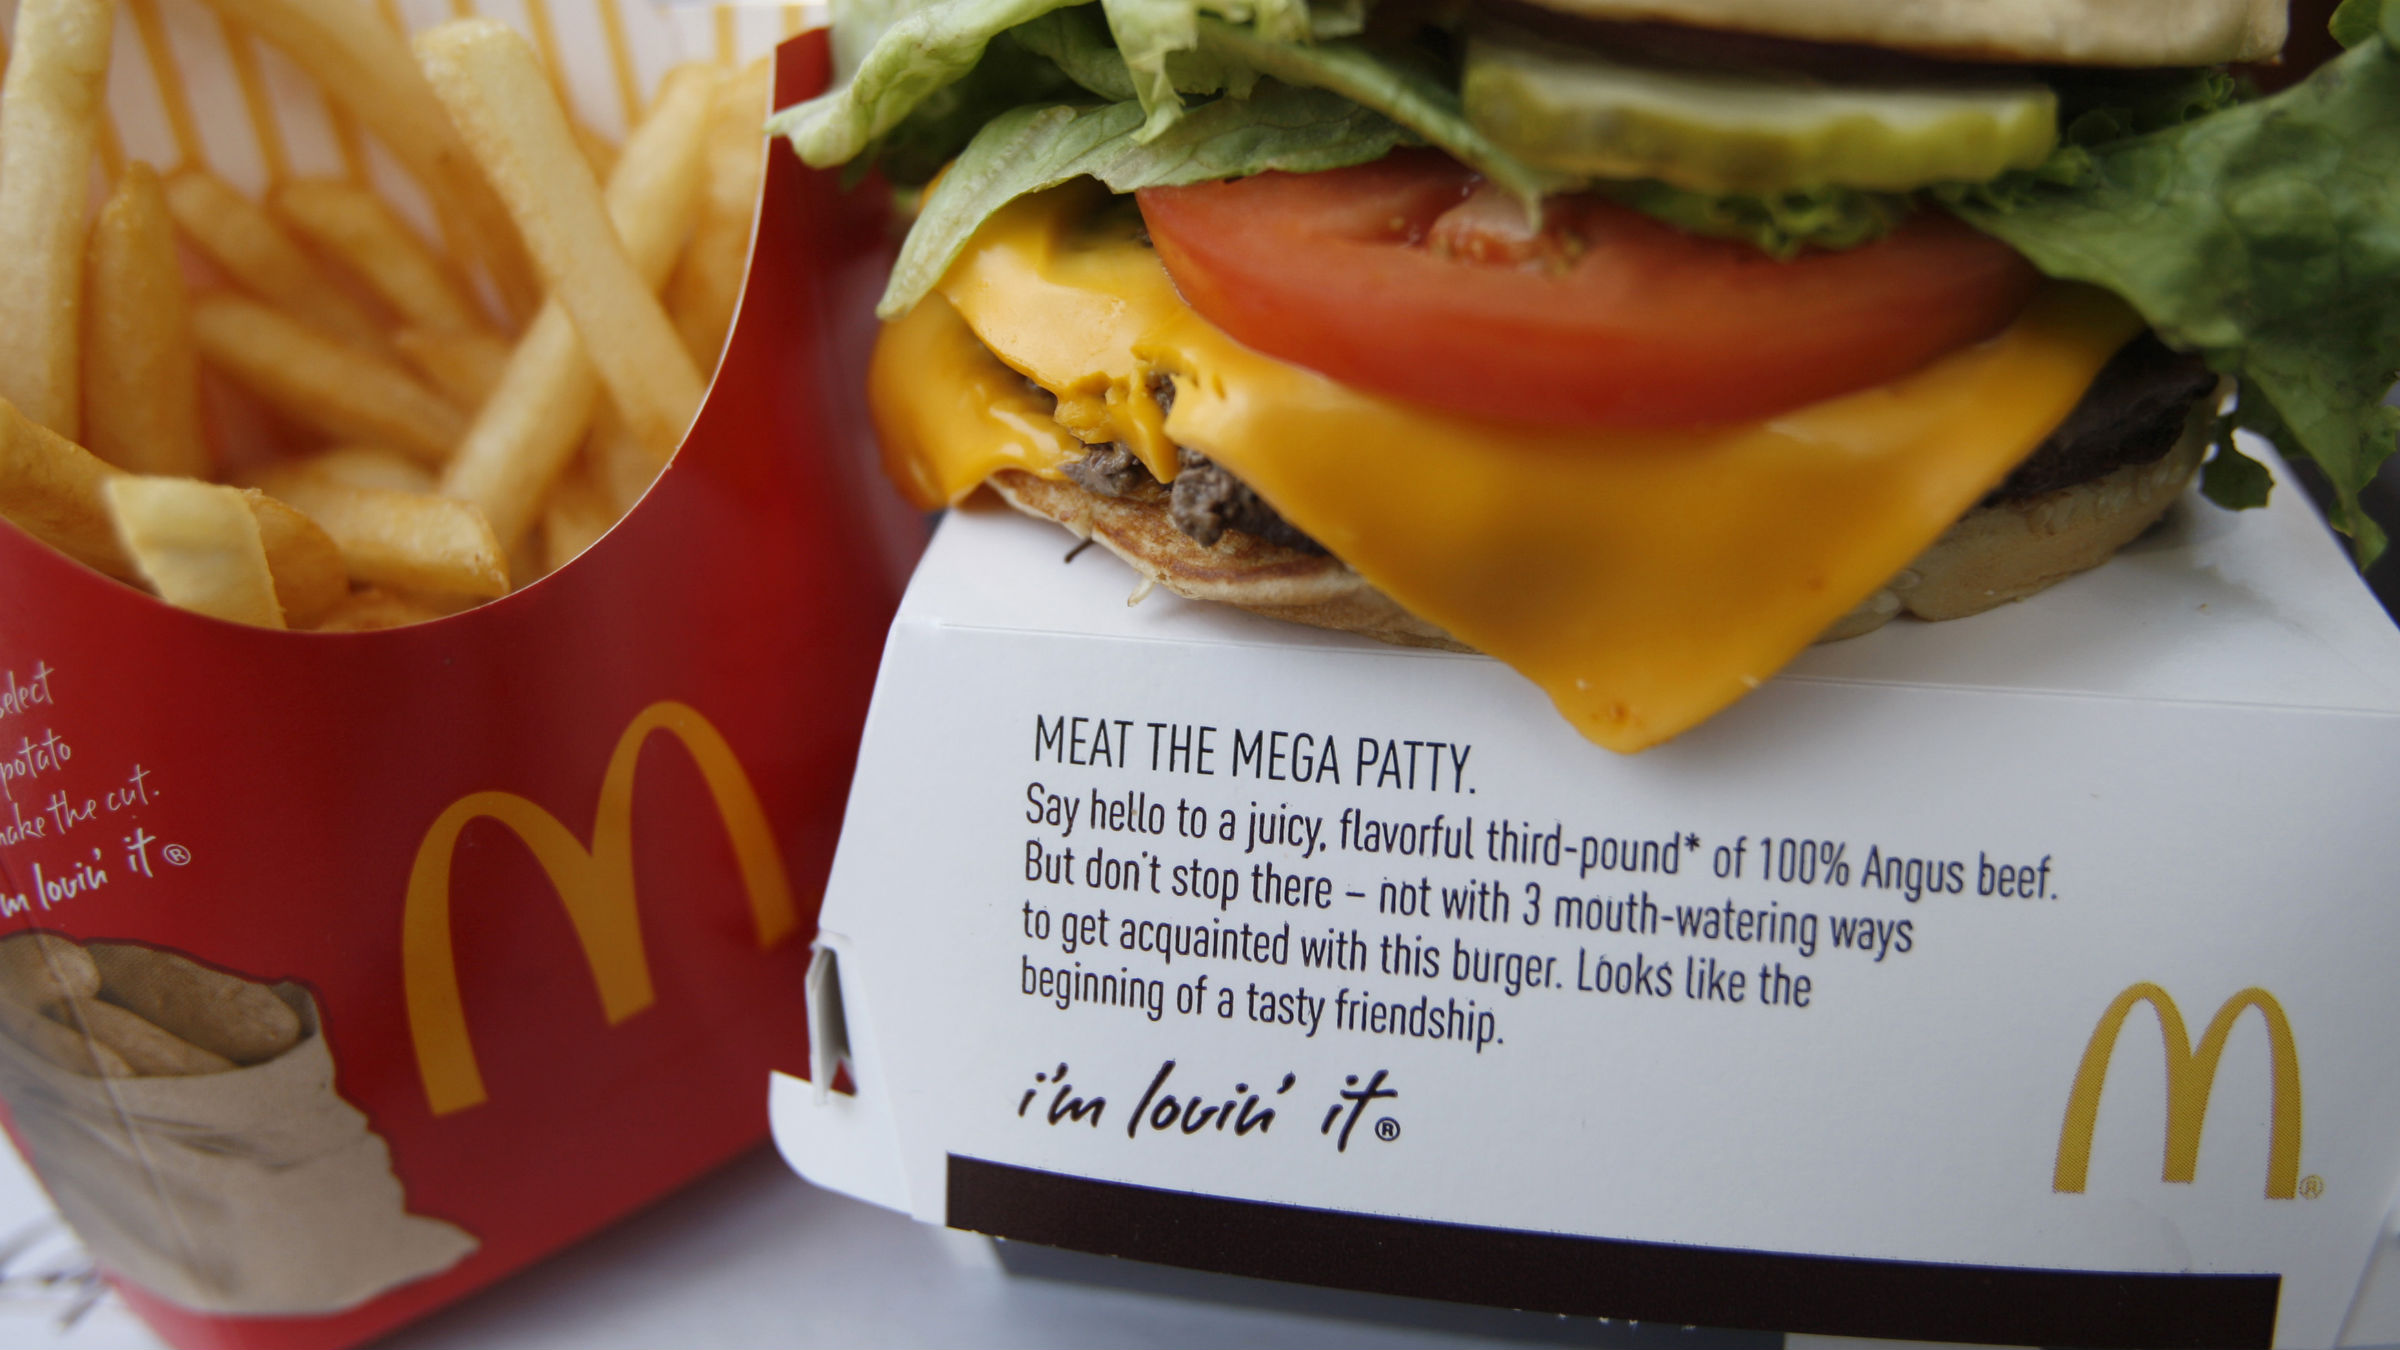 McDonald's product is pictured in a restaurant in Washington, July 23, 2010. McDonald's Corp reported weaker-than expected sales at established restaurants, overshadowing a profit beat for the second quarter, and shares dropped 2 percent.